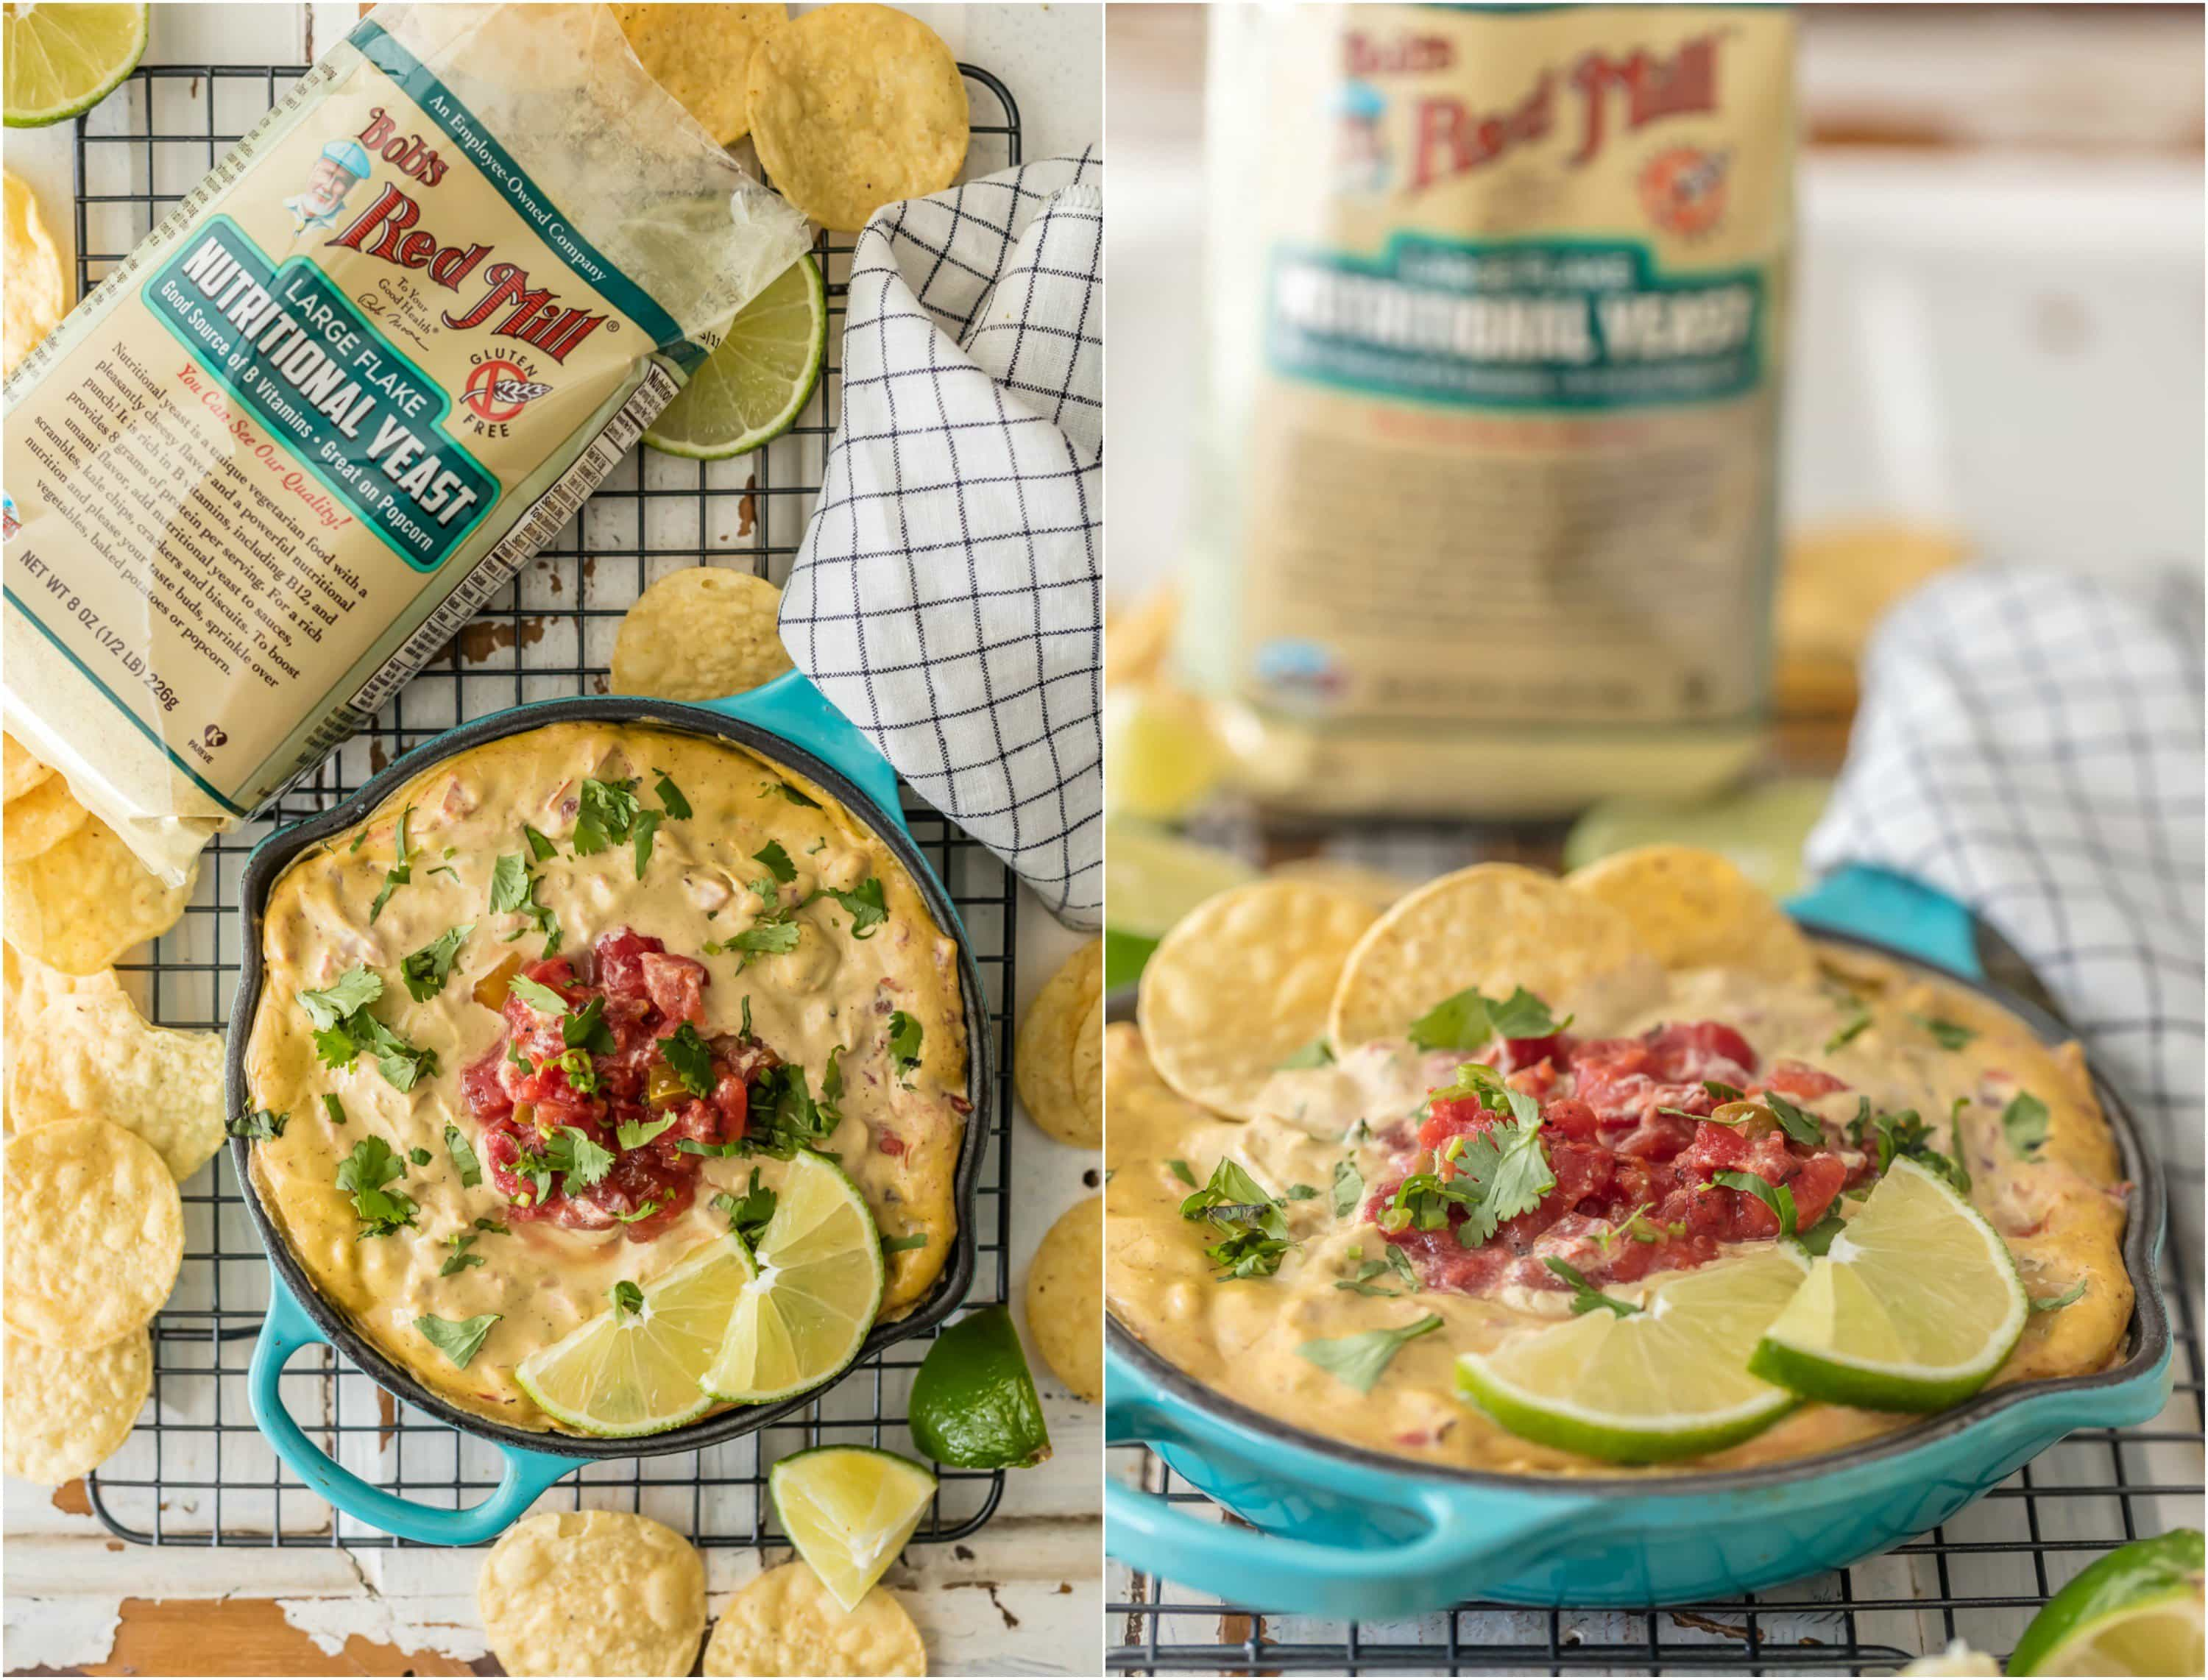 DAIRY FREE QUESO is our newest obsession! This healthy queso made with cashews, nutritional yeast, spices, rotel, and more is SO shockingly delicious. You have to give it a try to believe it!